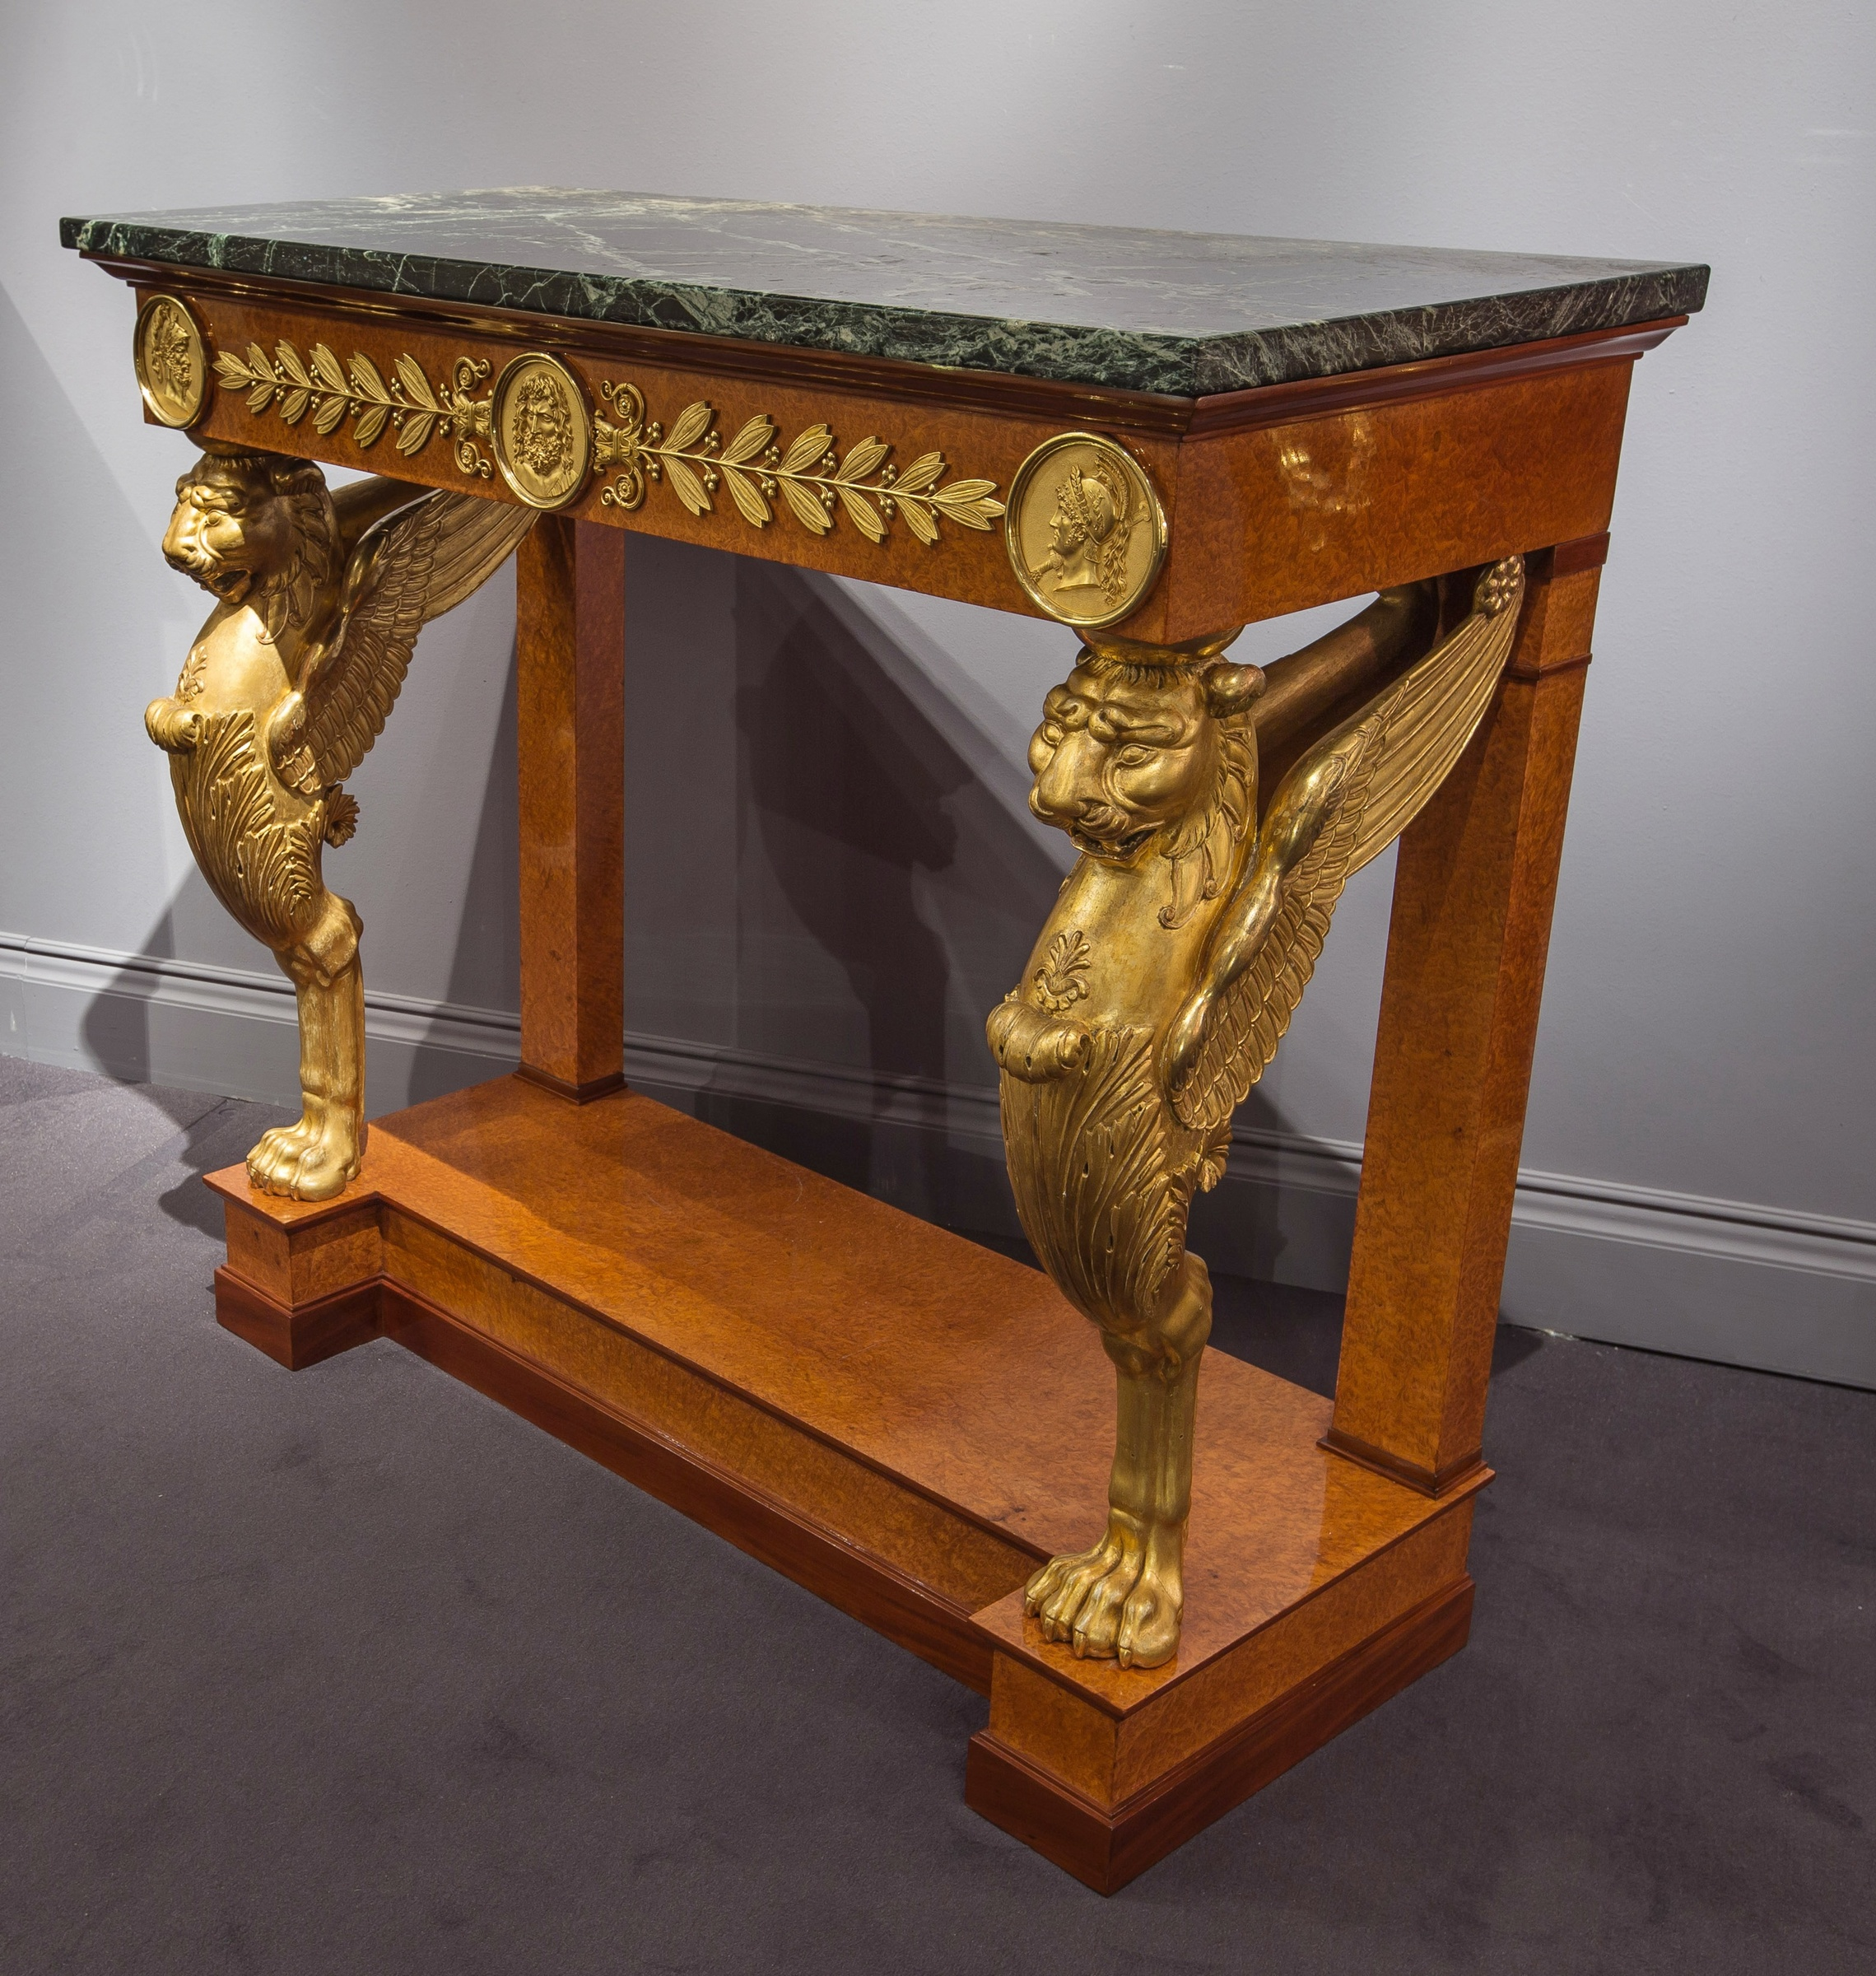 jacob desmalter et cie attributed to an empire console table attributed to jacob desmalter et. Black Bedroom Furniture Sets. Home Design Ideas